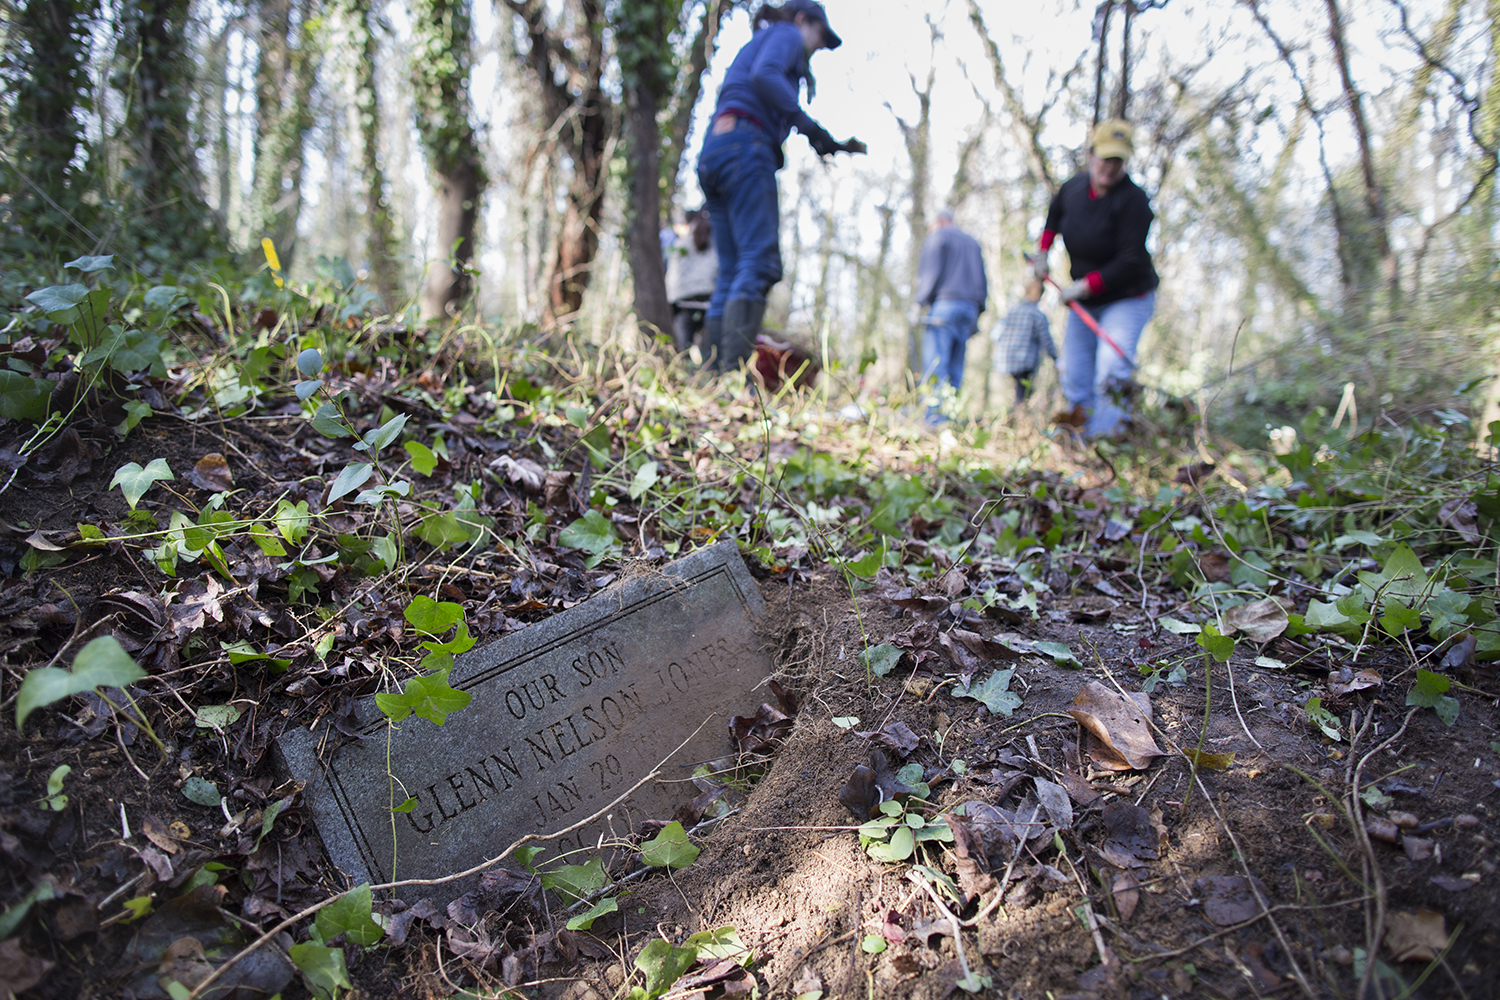 Grave of Glenn Nelson Jones, a young boy, revealed during East End Cemetery work day, January 2015. ©brianpalmer.photos 2015